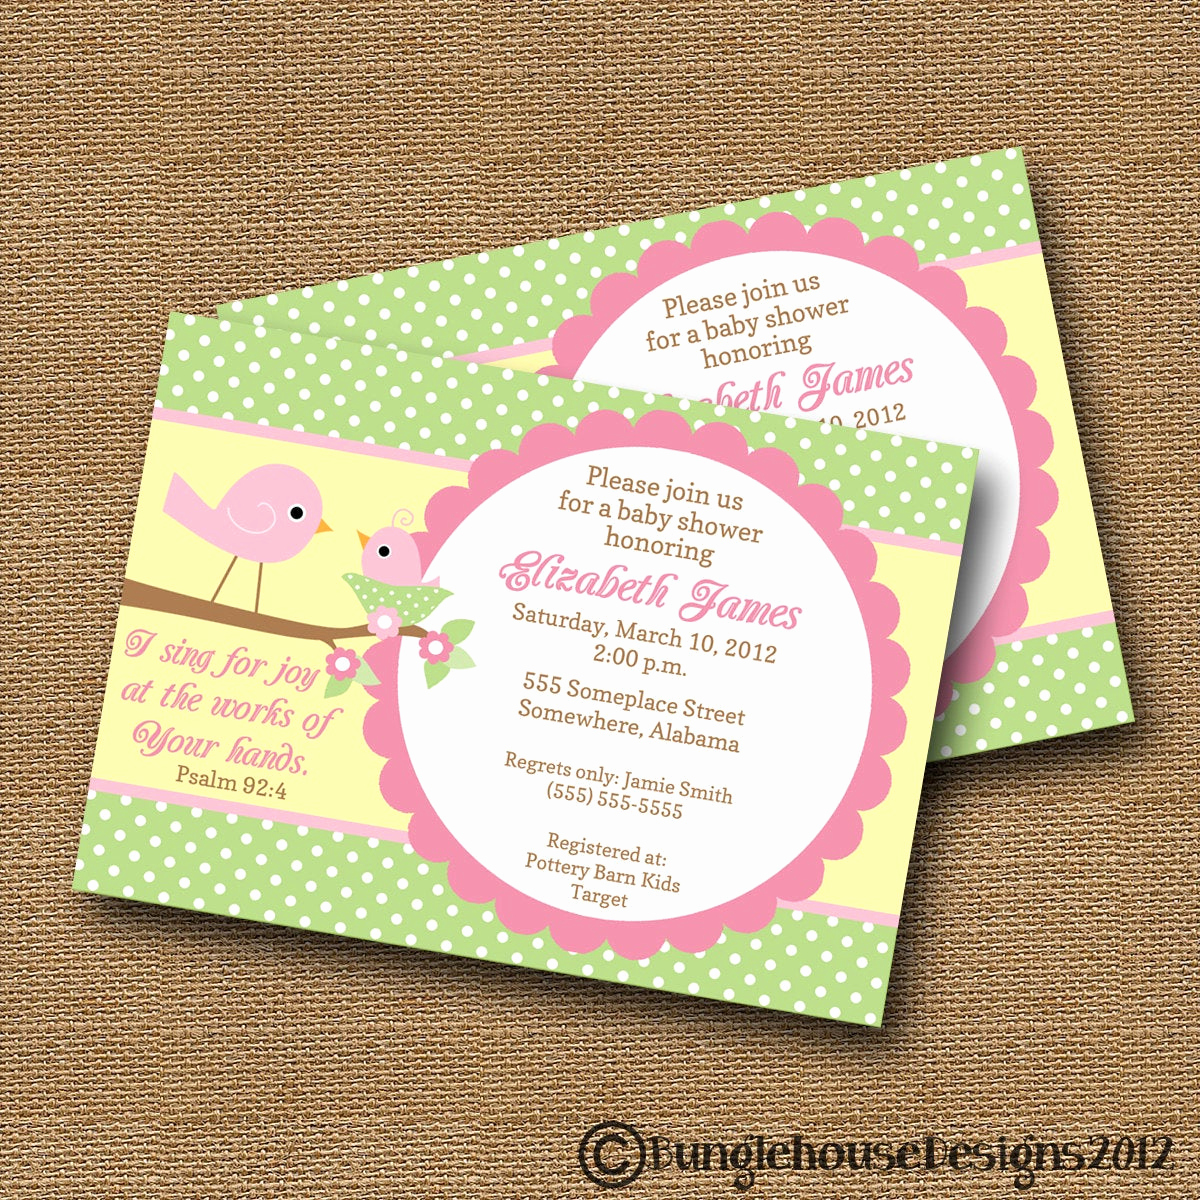 Baby Shower Invitation Ideas Homemade Inspirational Bird Baby Shower Invitation Diy Printable Baby Girl Christian